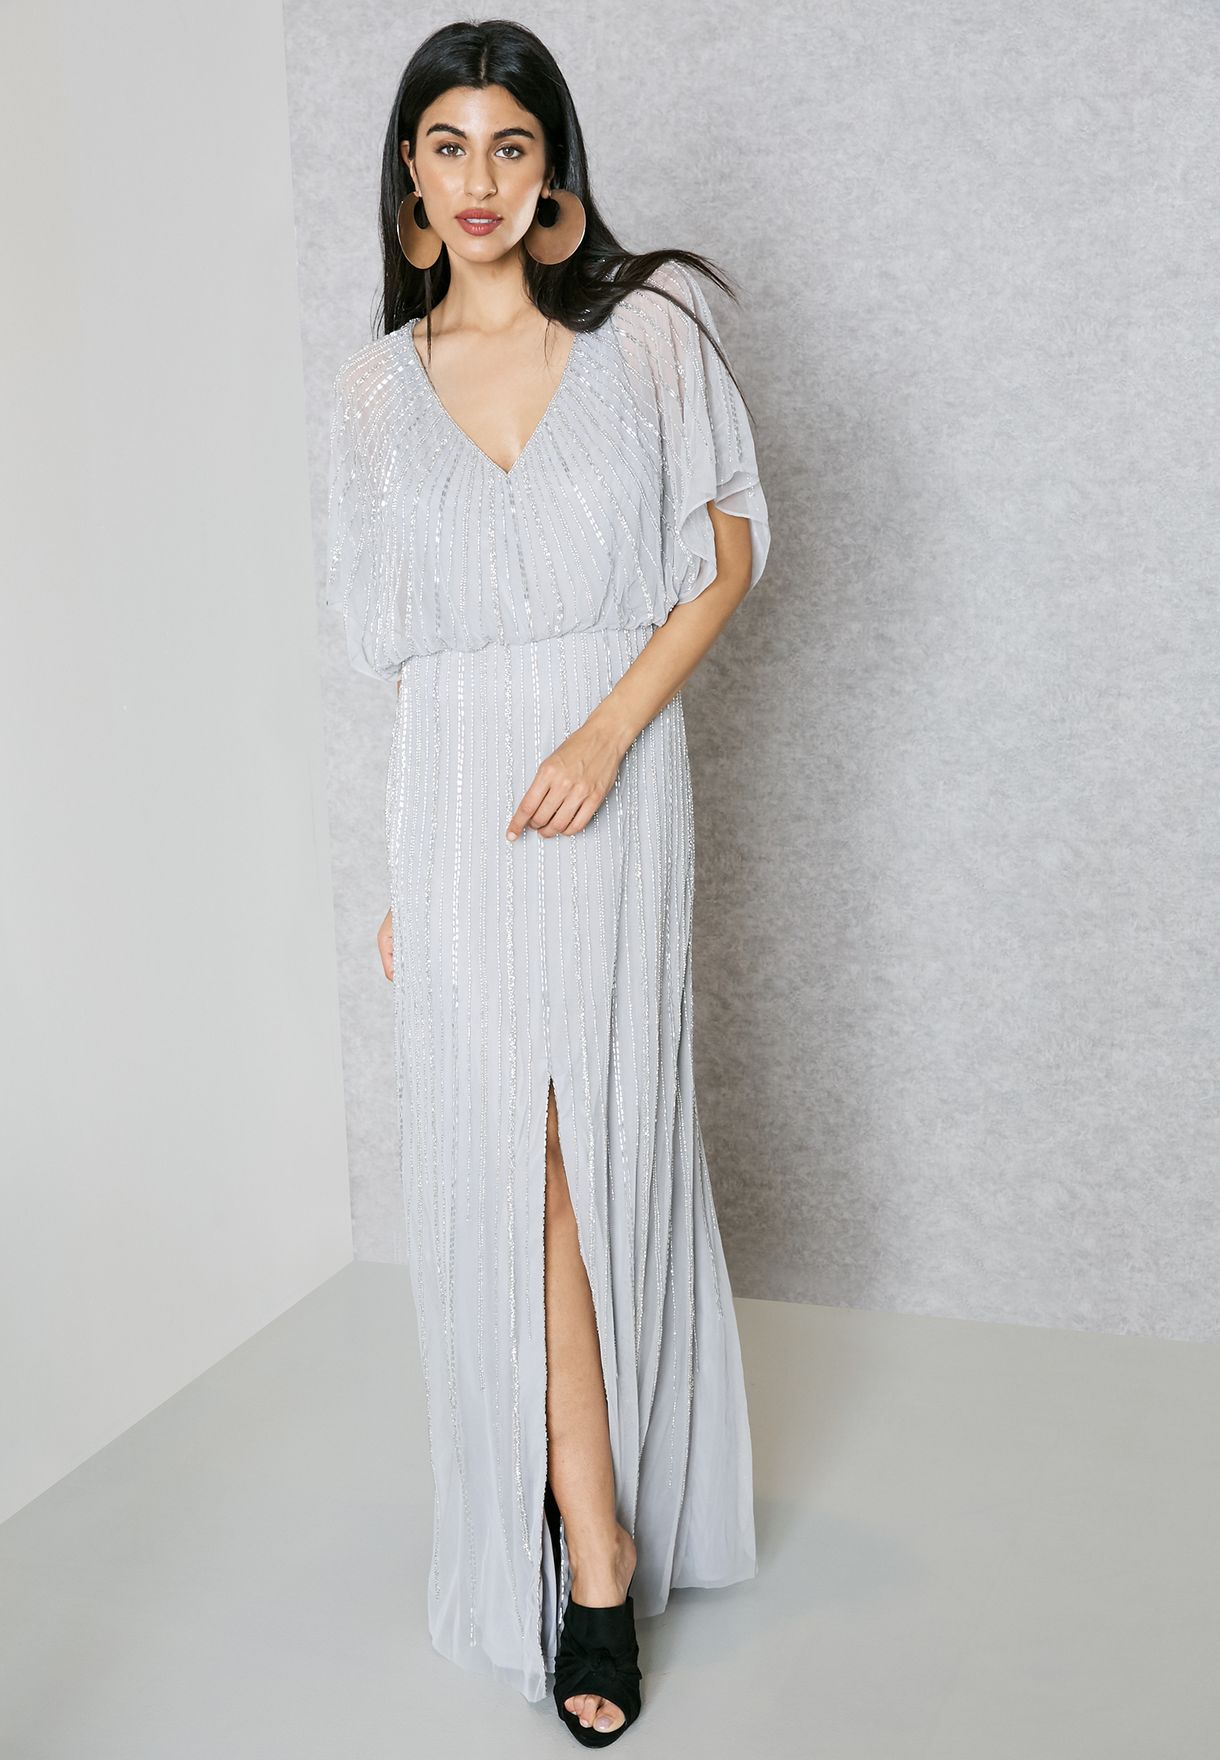 promo code 4f3f4 24878 Shop Mango grey Beaded Frill Sleeve Dress 83029011 for Women in UAE on sale